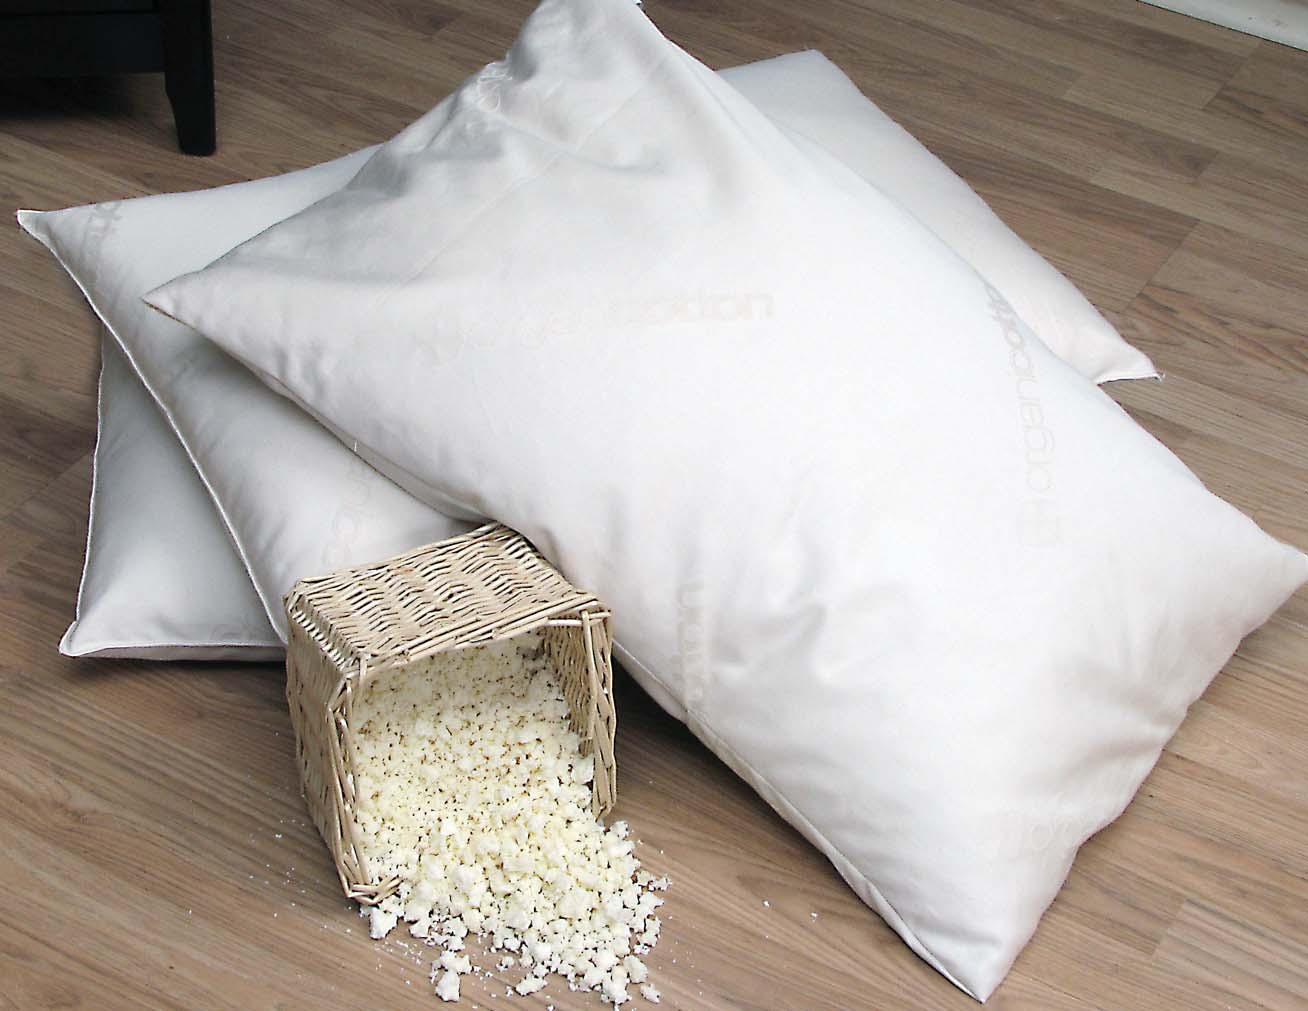 shredded pillow